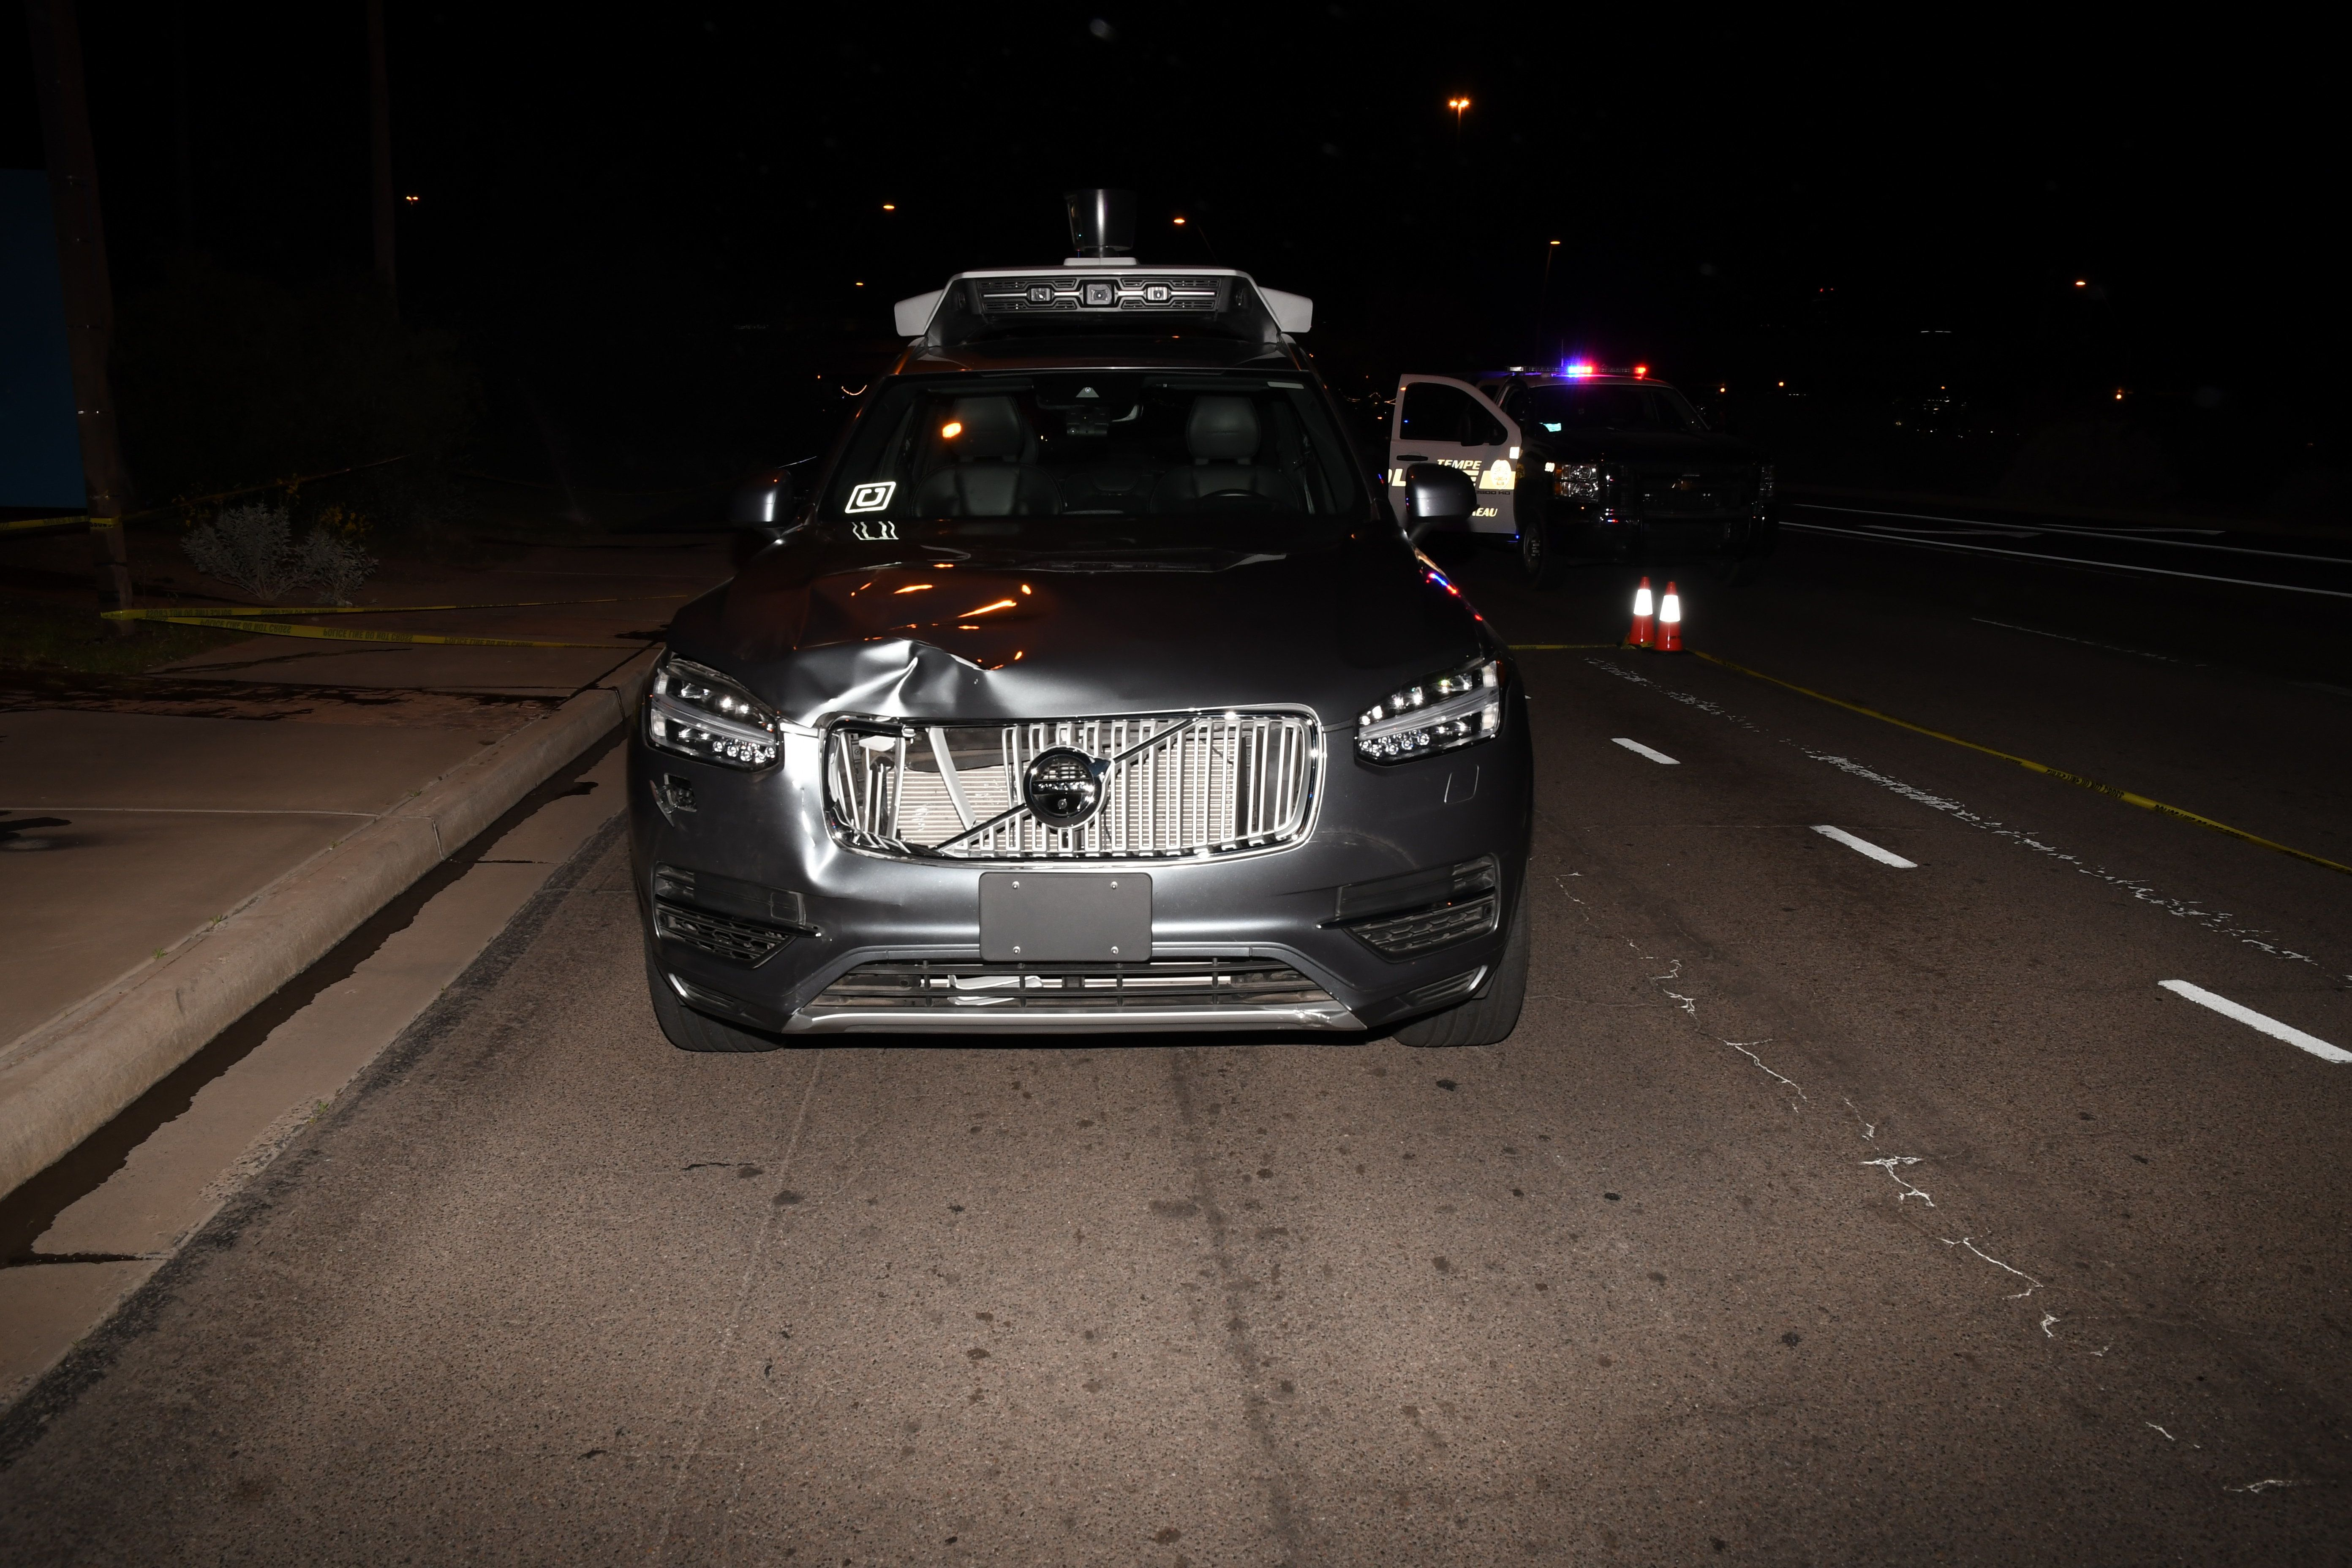 A photo of the self-driving Uber SUV in Tempe immediately following the fatal accident in March.